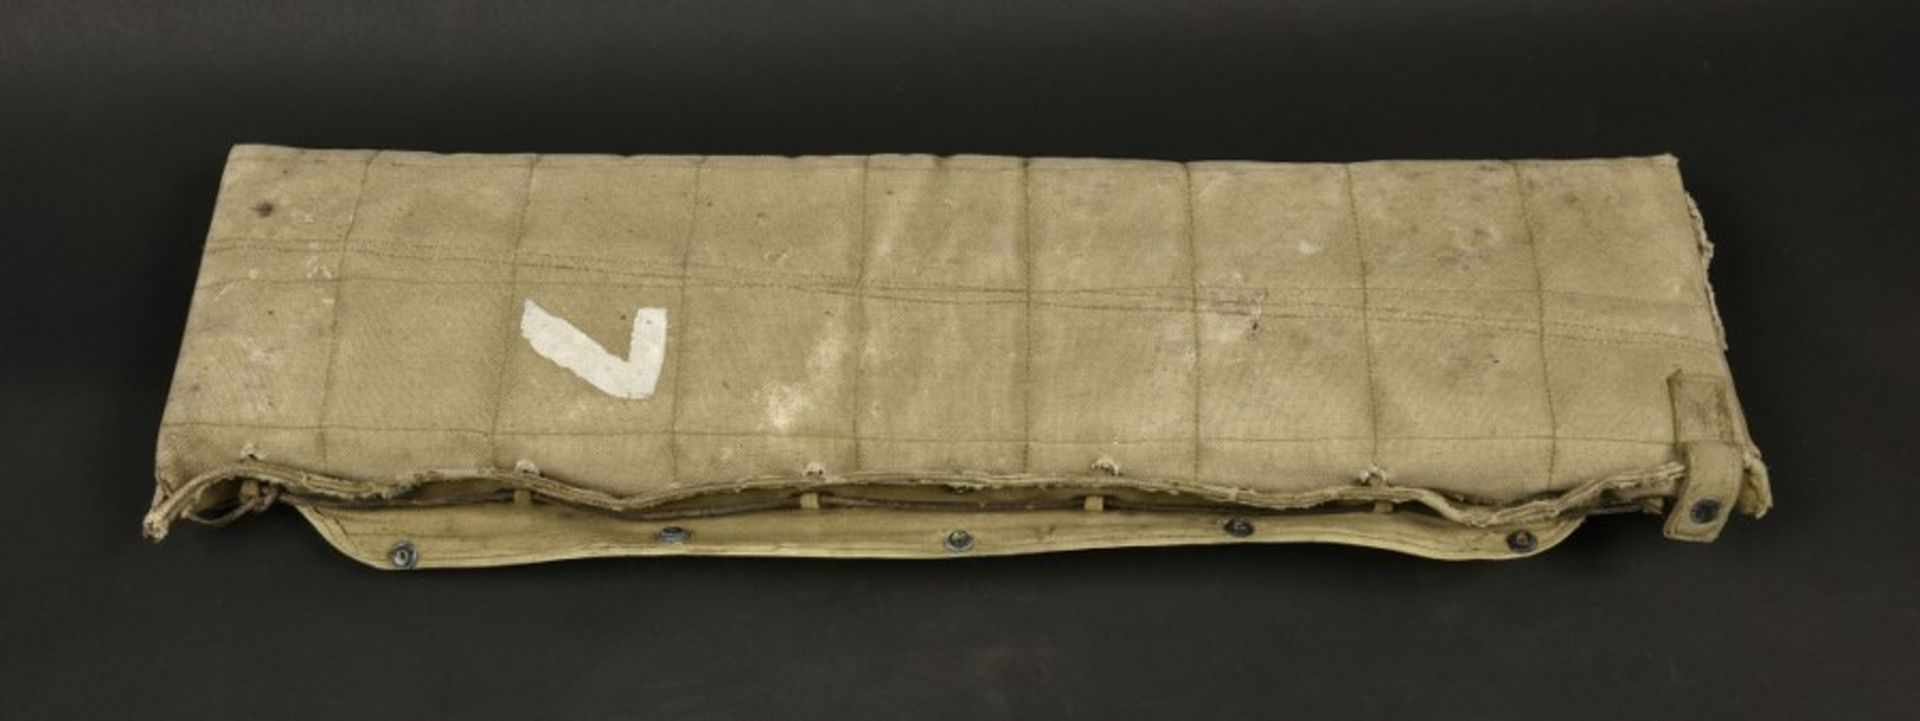 Los 56 - Griswol Bag pour fusil Garand. Griswold Bag for Garand rifle Housse en forte toile kaki